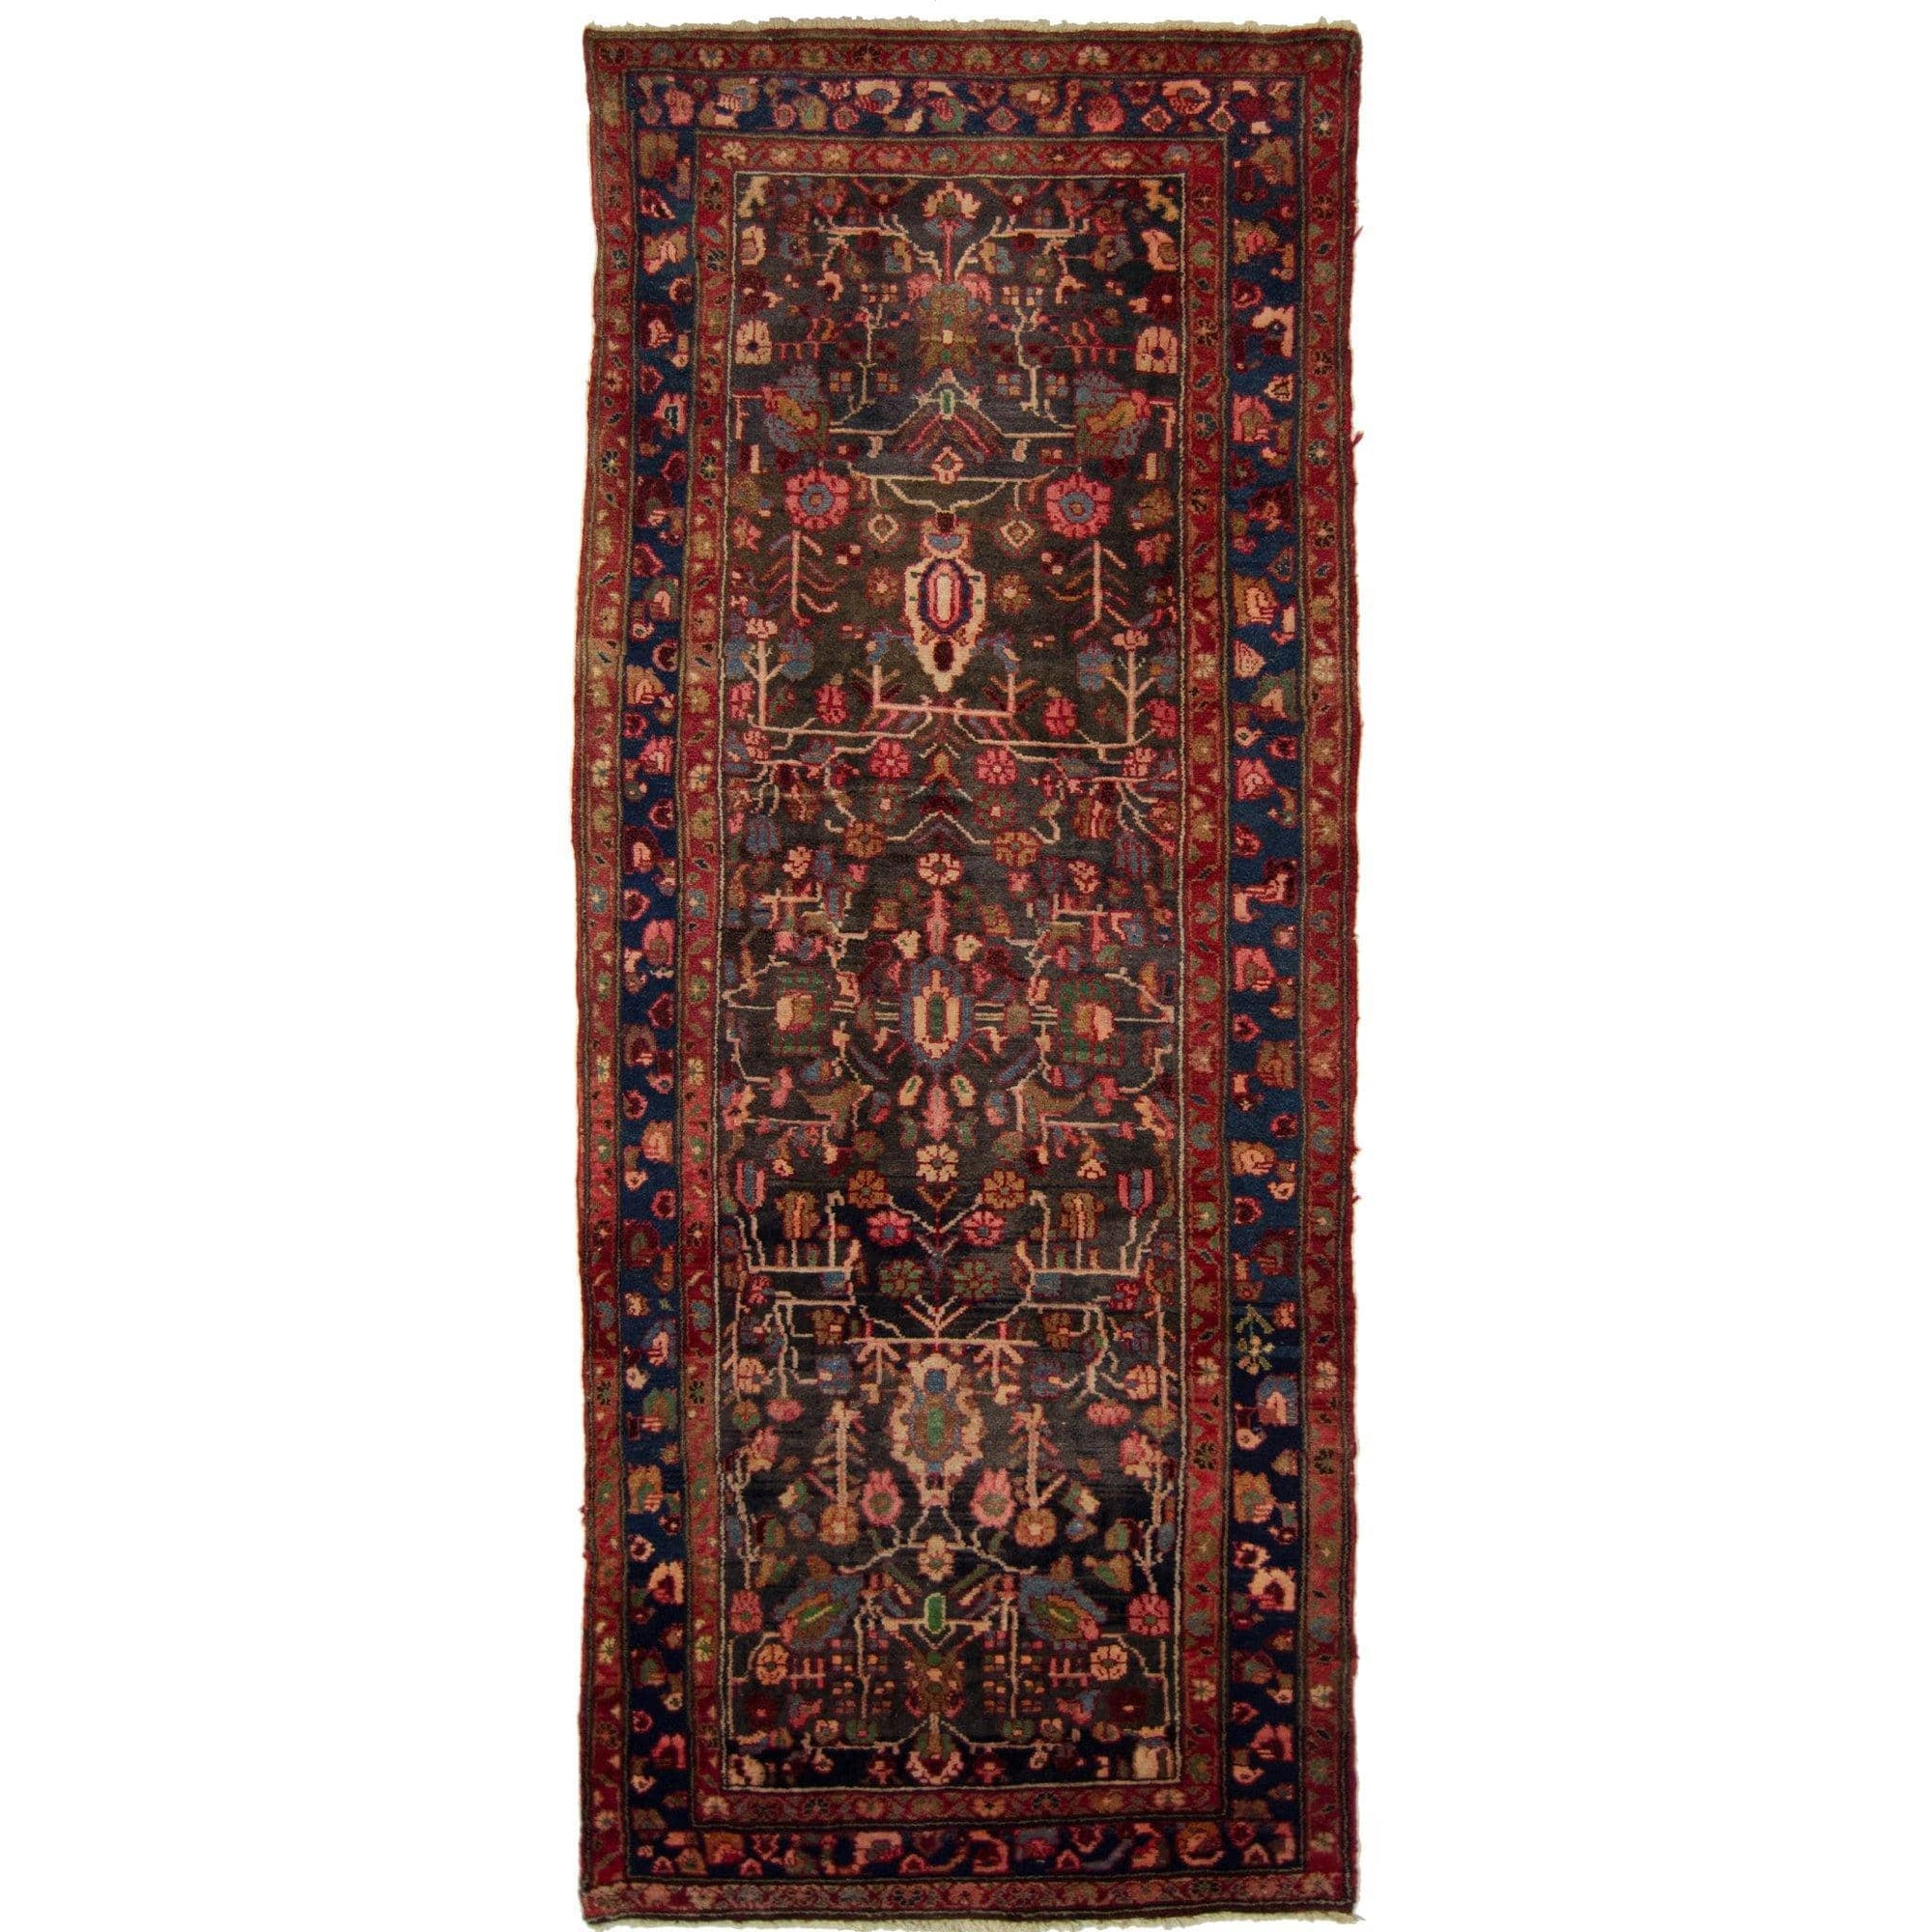 Authentic Hand-knotted Wool Persian Koliai Runner 114cm x 295cm Persian-Rug | House-of-Haghi | NewMarket | Auckland | NZ | Handmade Persian Rugs | Hand Knotted Persian Rugs